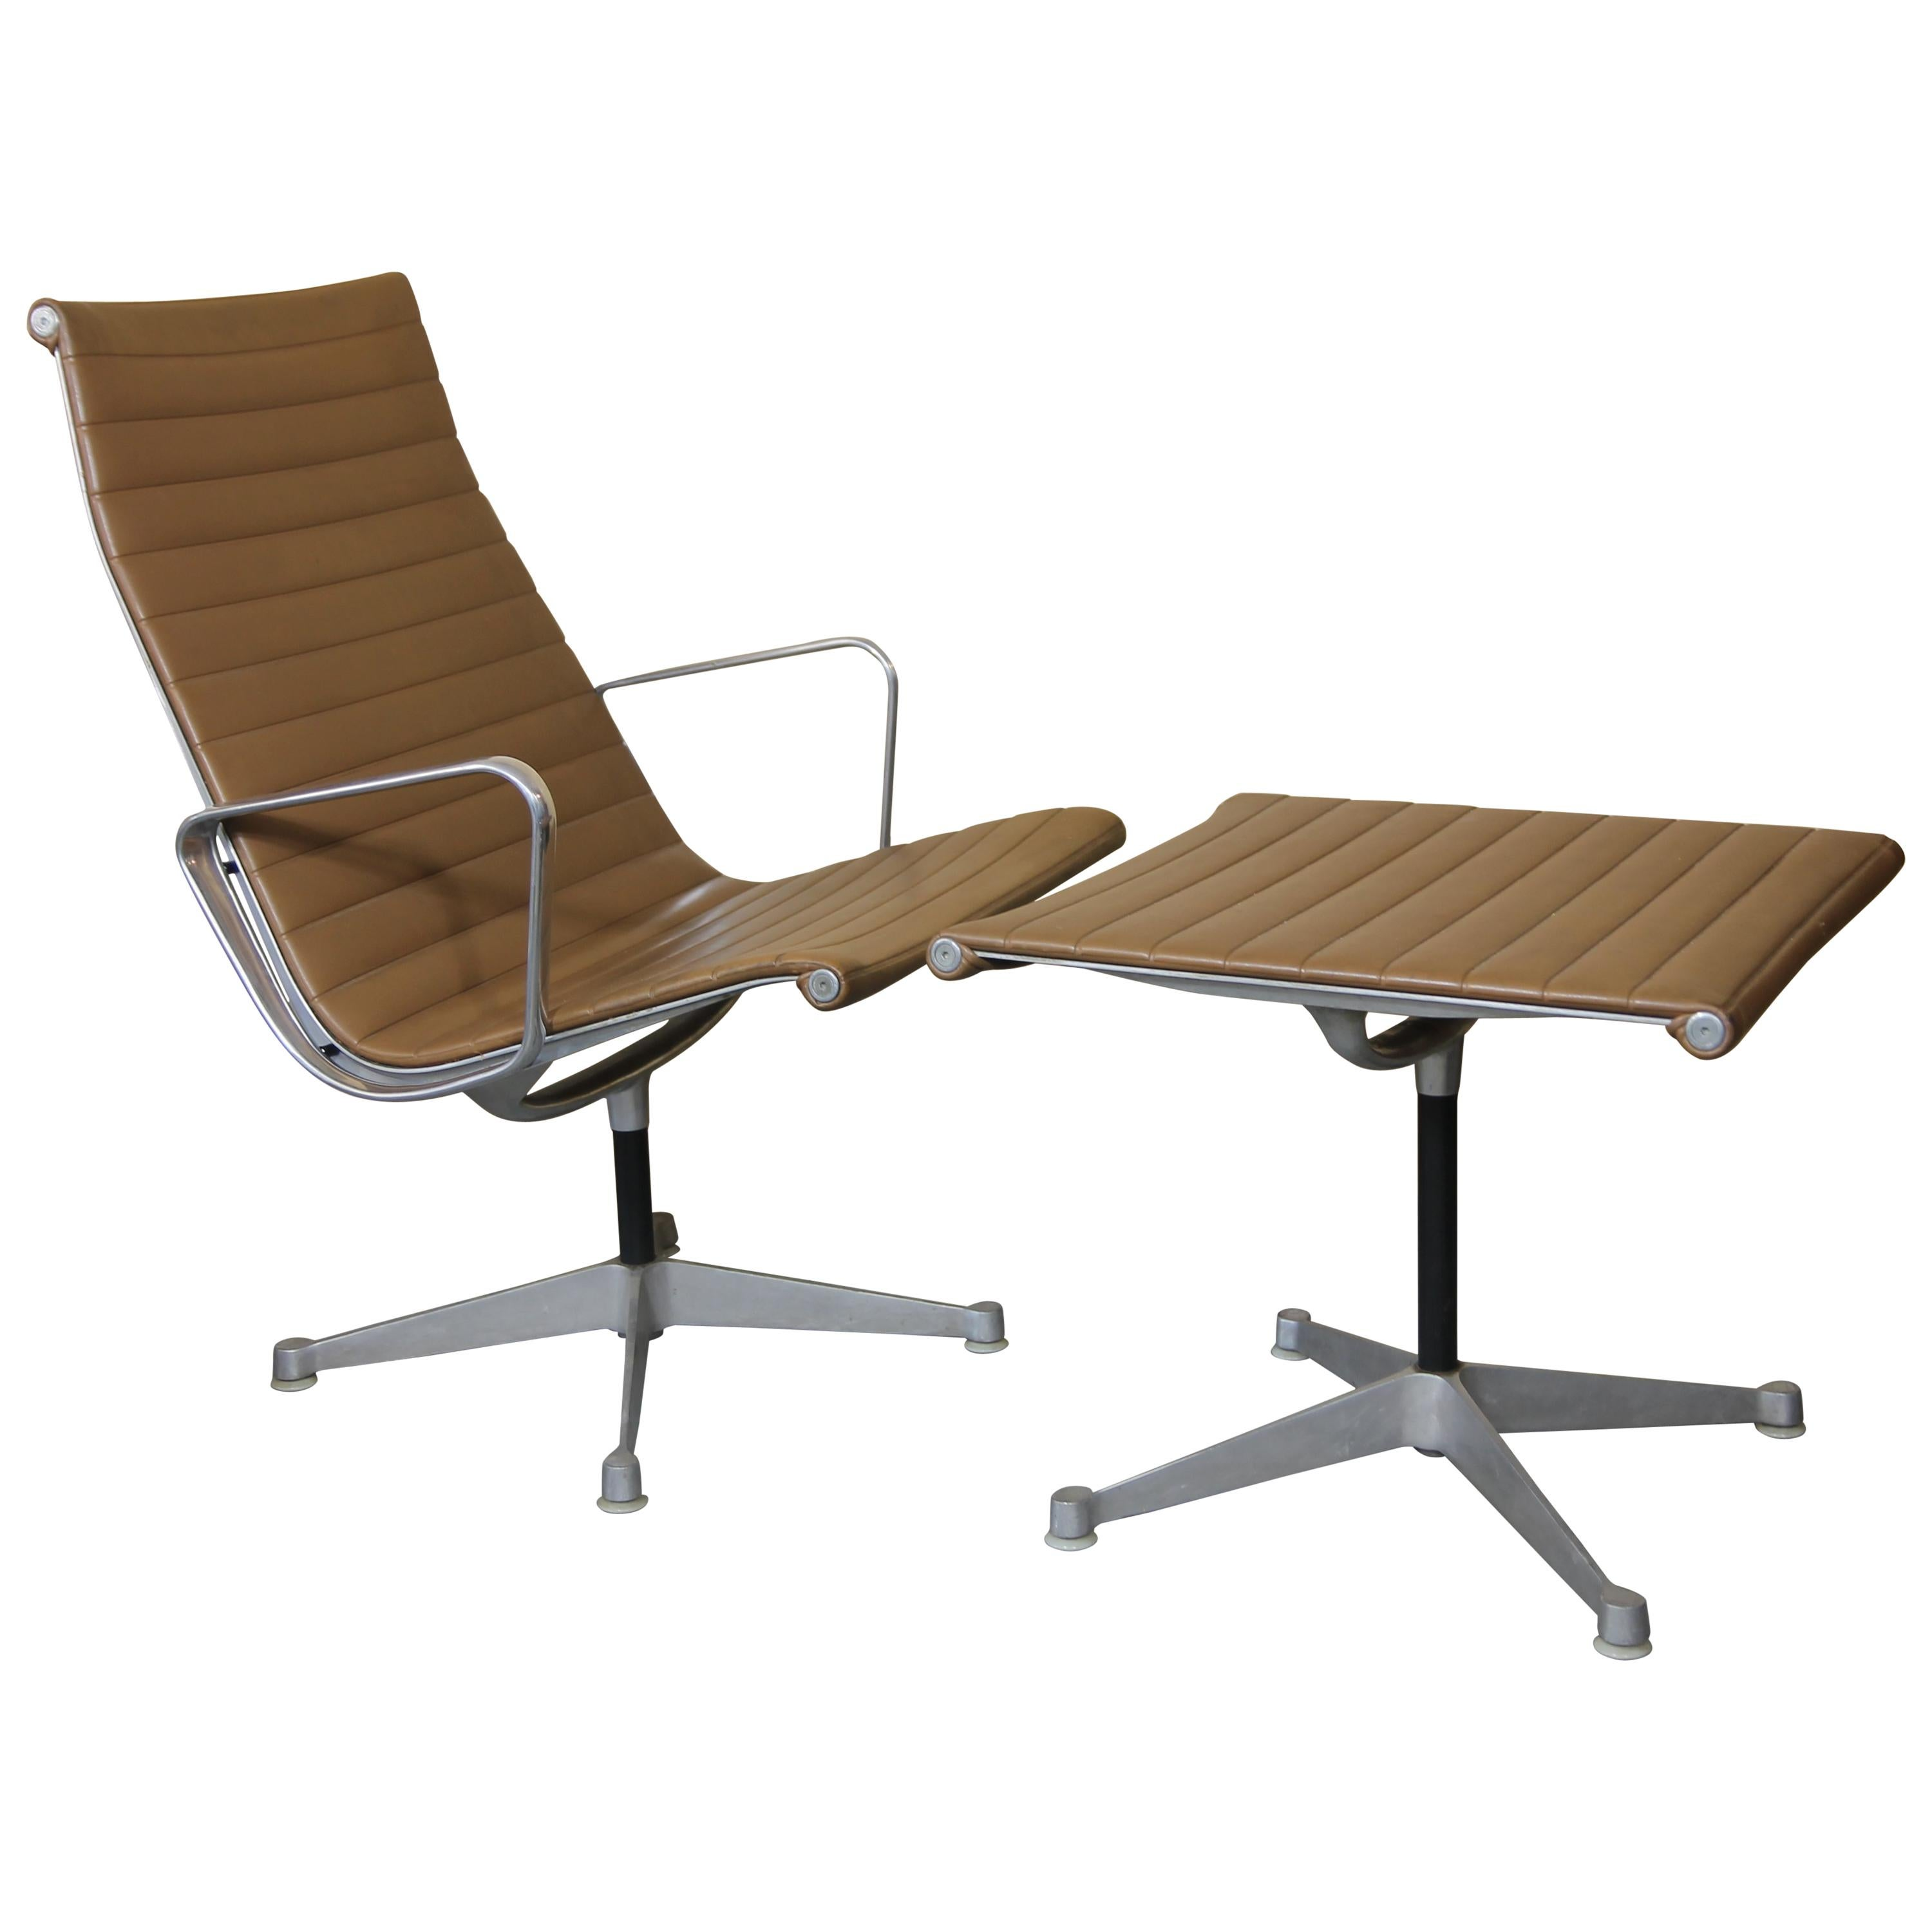 Charles Eames Aluminum Group Lounge And Ottoman For Sale At 1stdibs